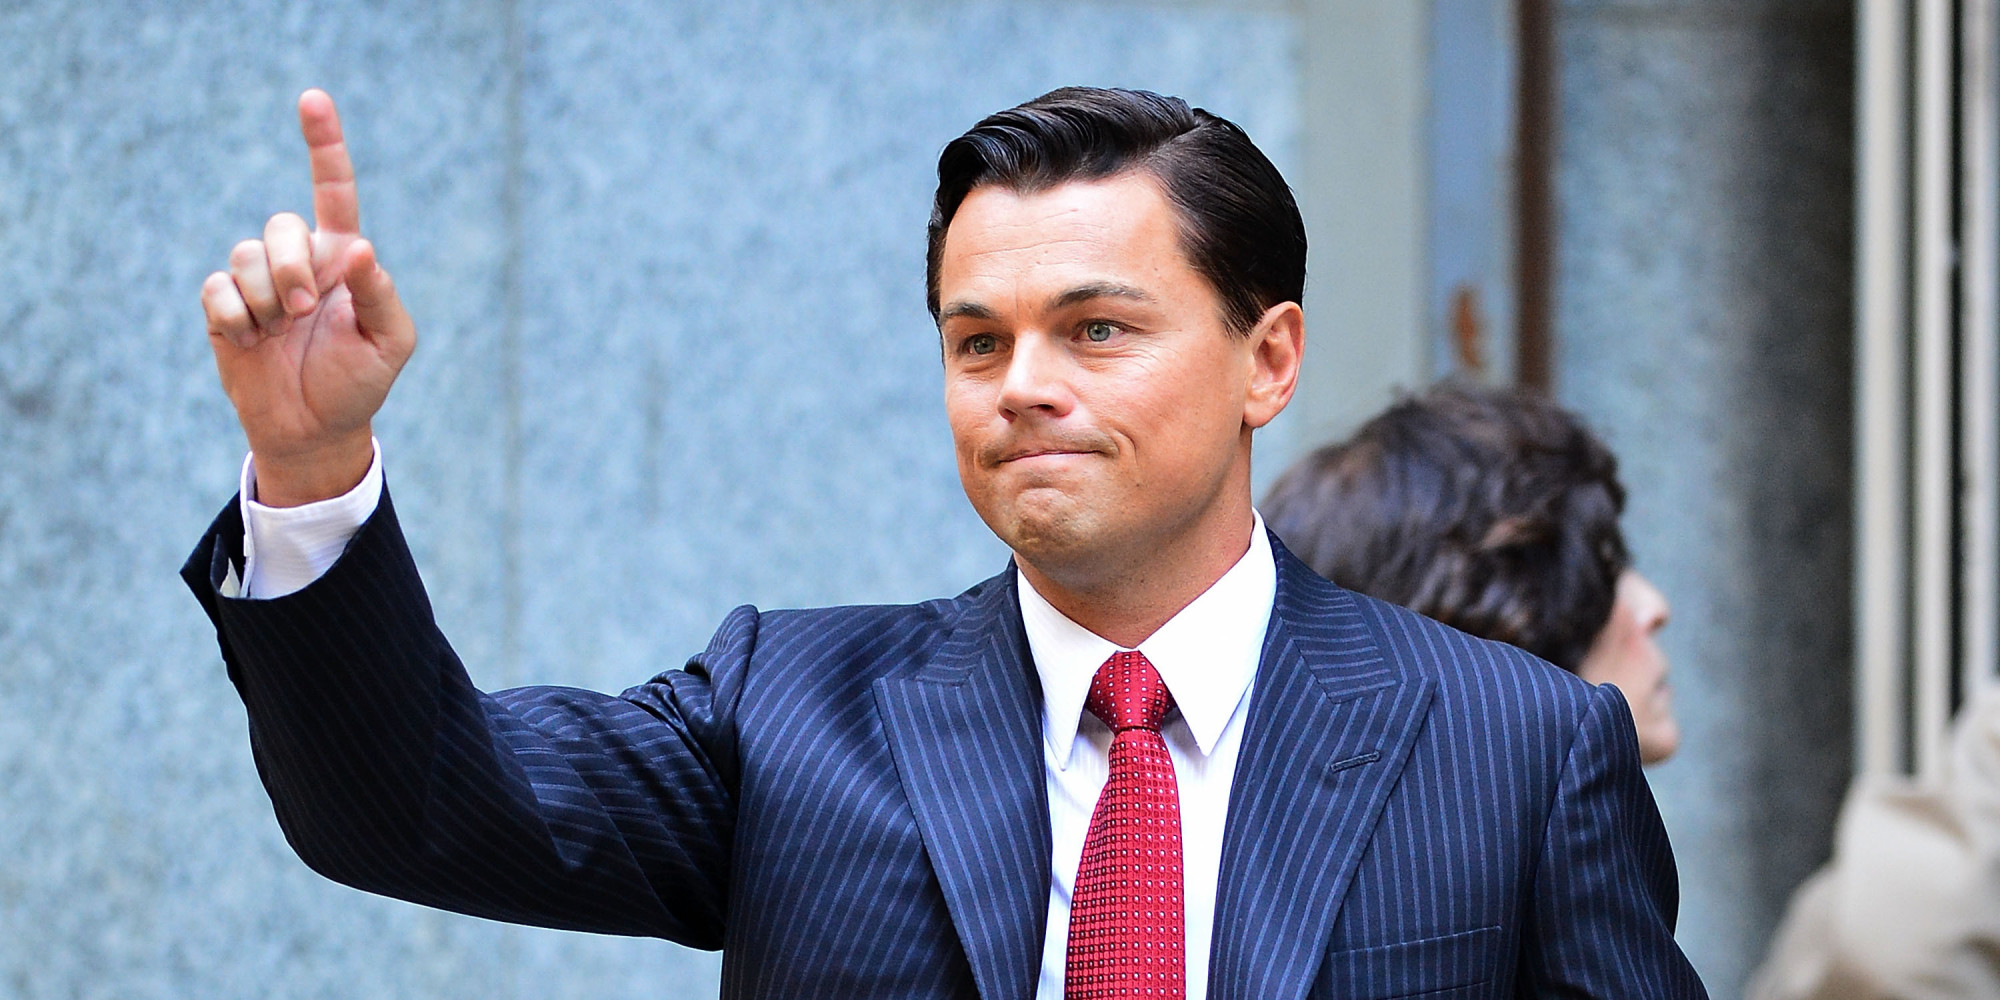 leonardo dicaprio can make even 90s suits look good in